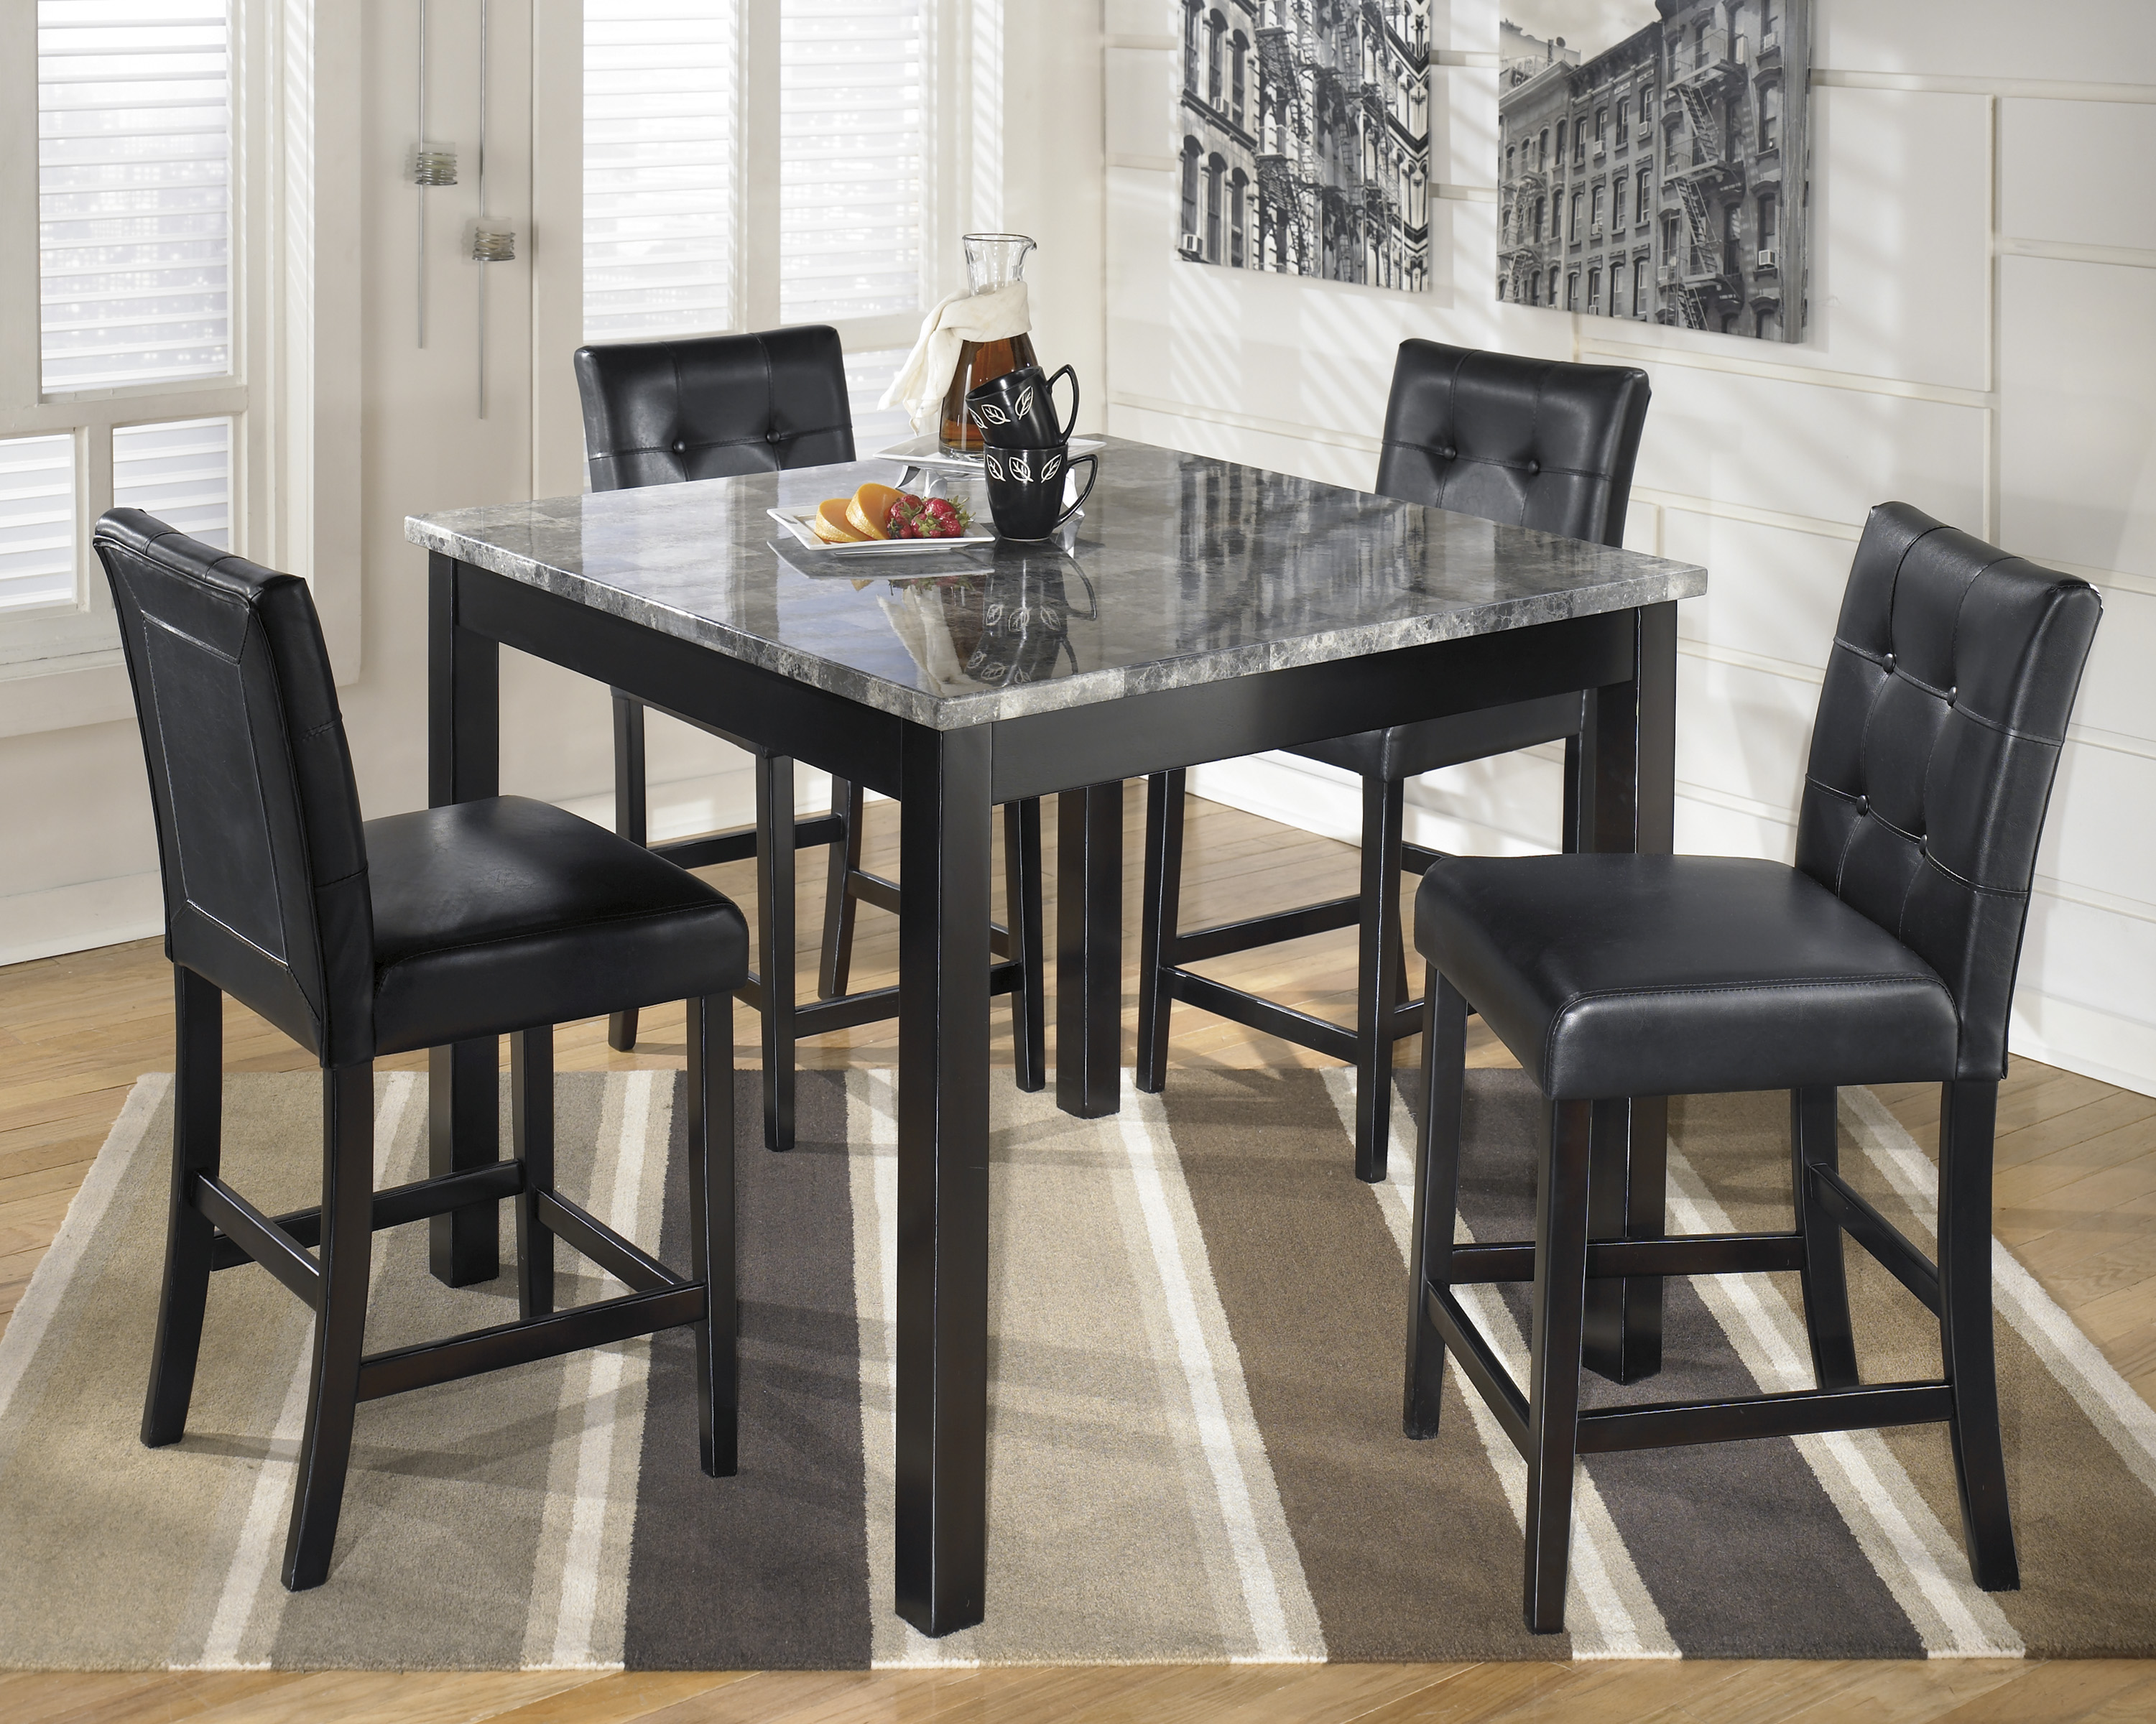 Black Dining Room Table And Chairs Majik Dining Room Furniture Rental In Pennsylvania Rent To Own